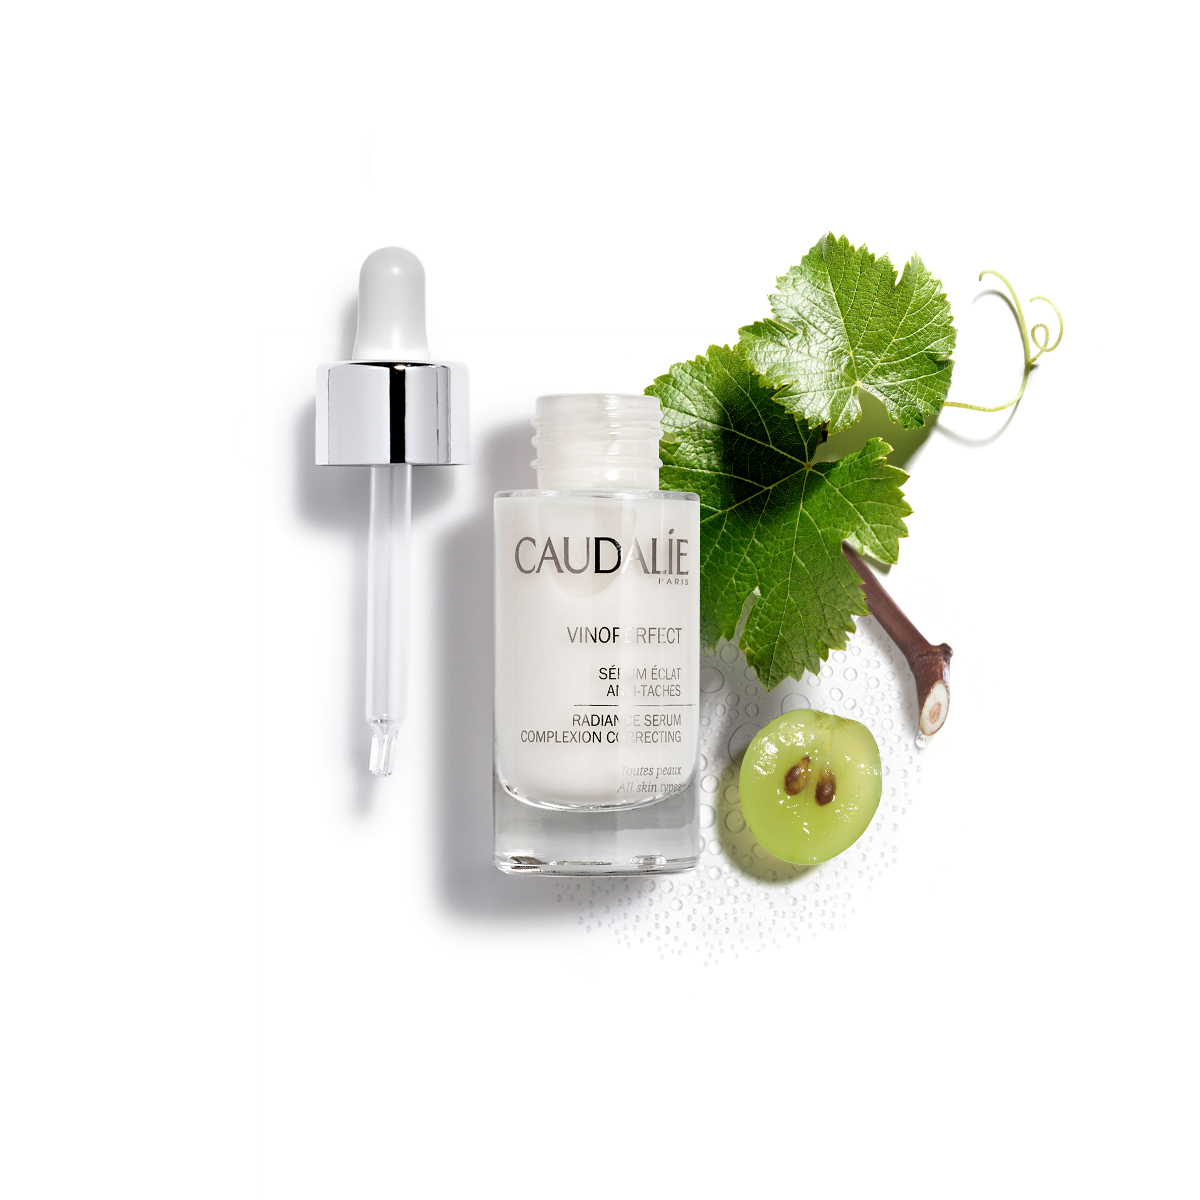 Caudalie Vinoperfect Radiance Serum (mood)